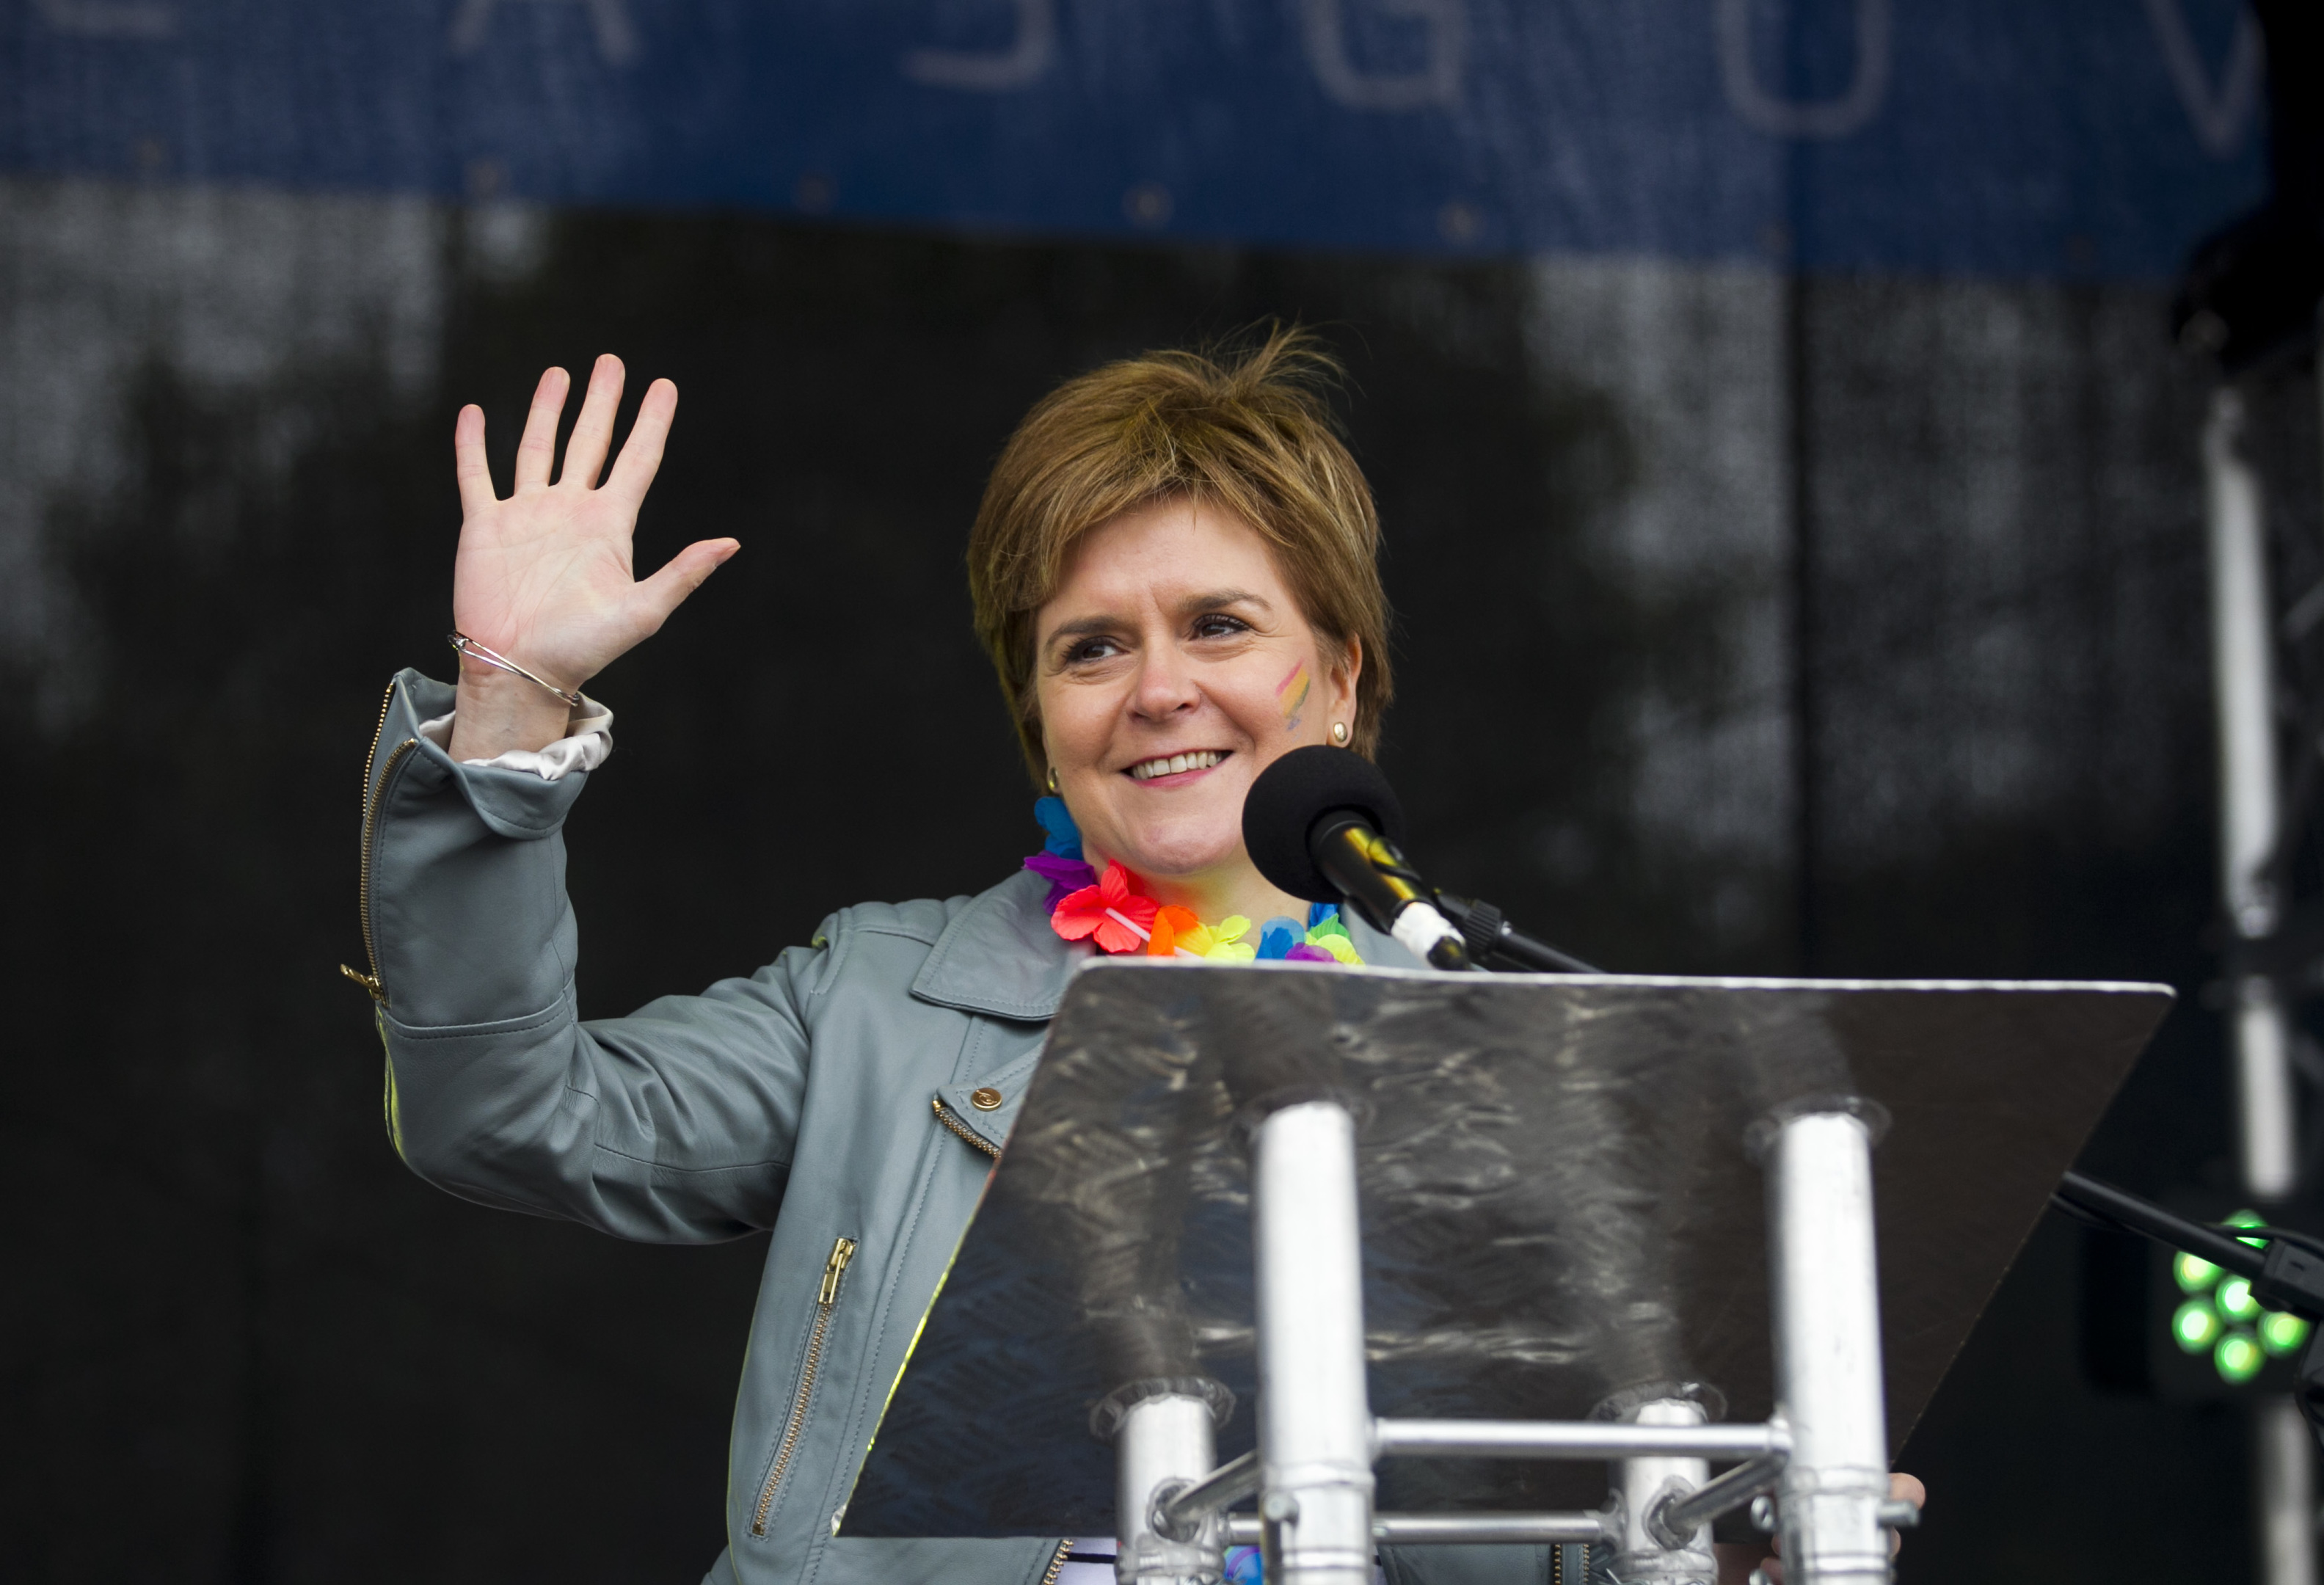 Nicola Sturgeon speaking to the crowds after the march last year (Andrew Cawley / DC Thomson)